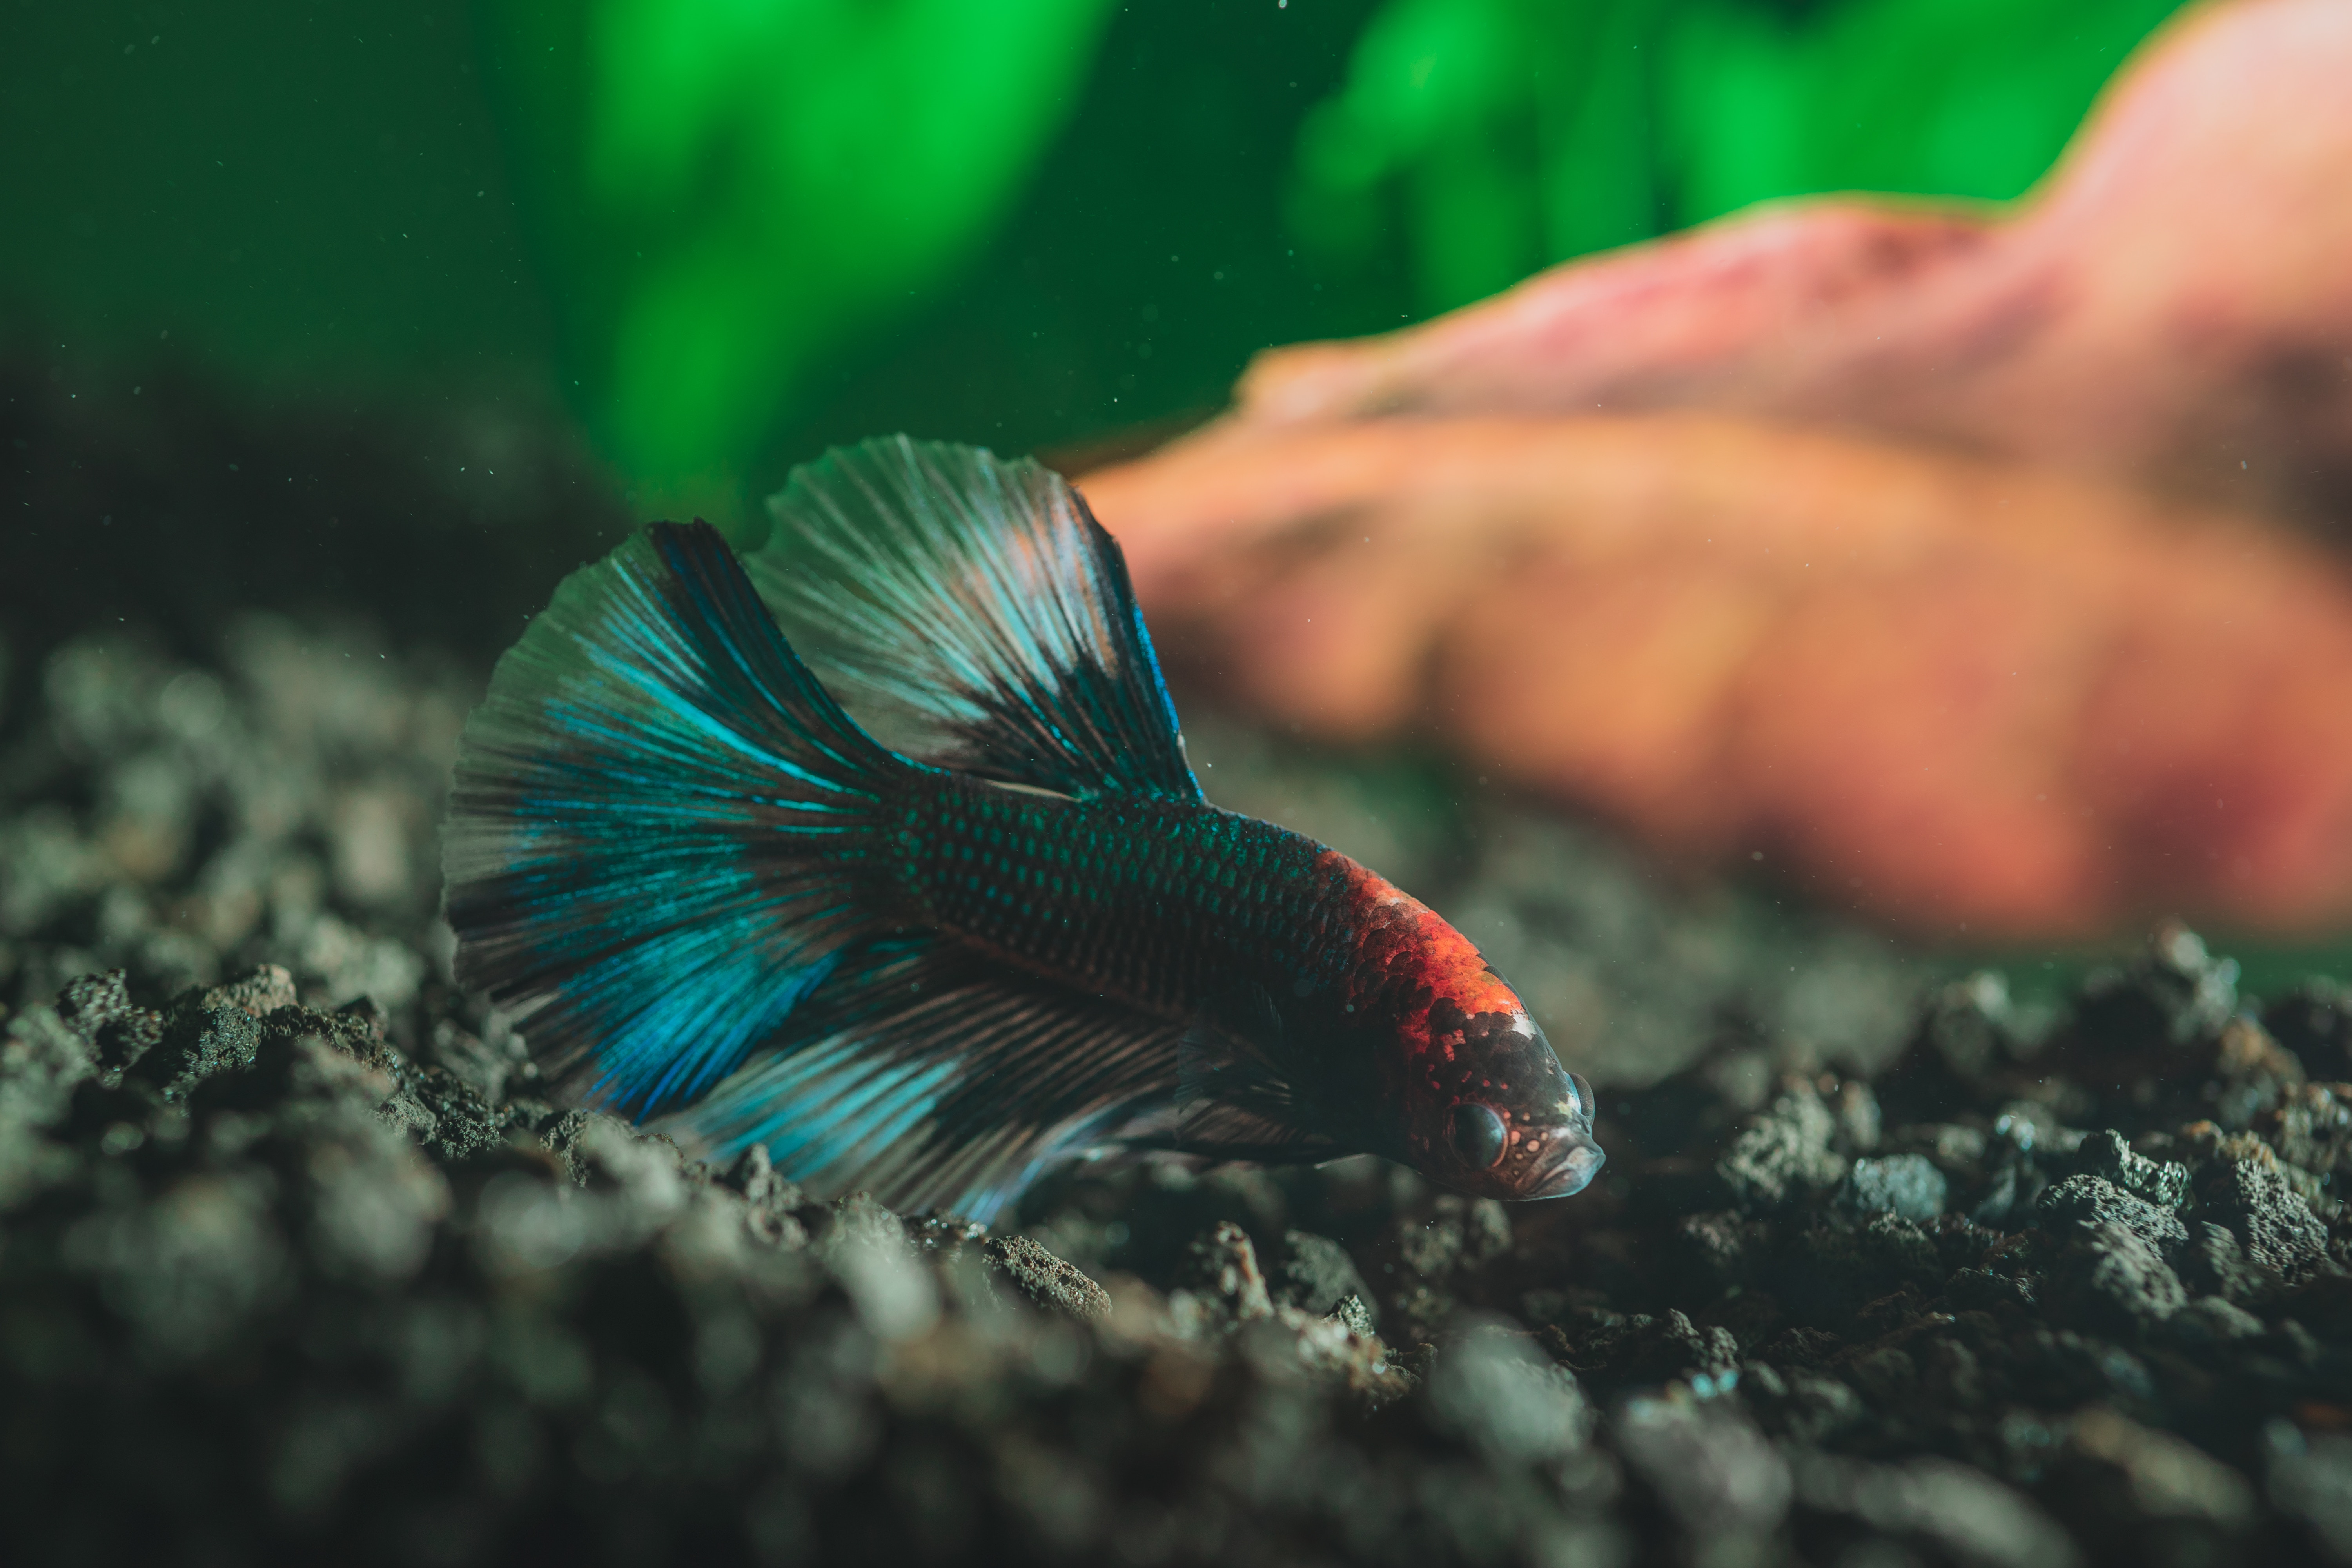 The Most Colorful Pet Fish for Beginners from North Carolina Lifestyle Blogger Adventures of Frugal Mom